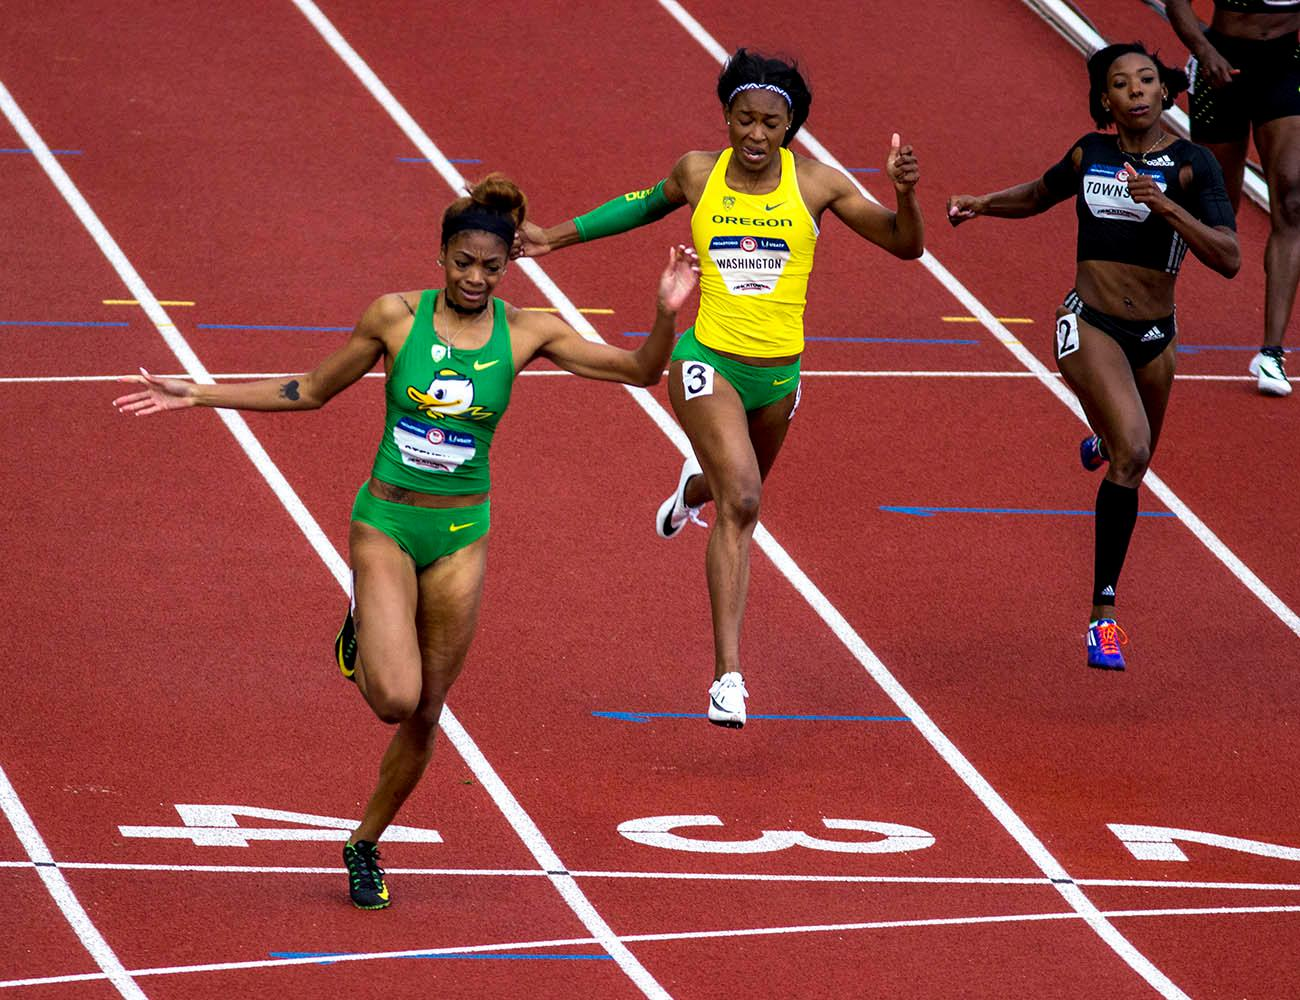 From left to right, Deajah Stevens, Ariana Washington and Tiffany Townsend cross the finish line in the Women�s 200m Dash. Stevens finished second with a time of 22.30. Washington finished fifth with a time of 22.65. Townsend finished seventh with a time of 22.80. Day 10 of the U.S. Track and Field Trials concluded Sunday at Hayward Field in Eugene, Ore. The competition lasted July 1 through July 10. Photo by Amanda Butt